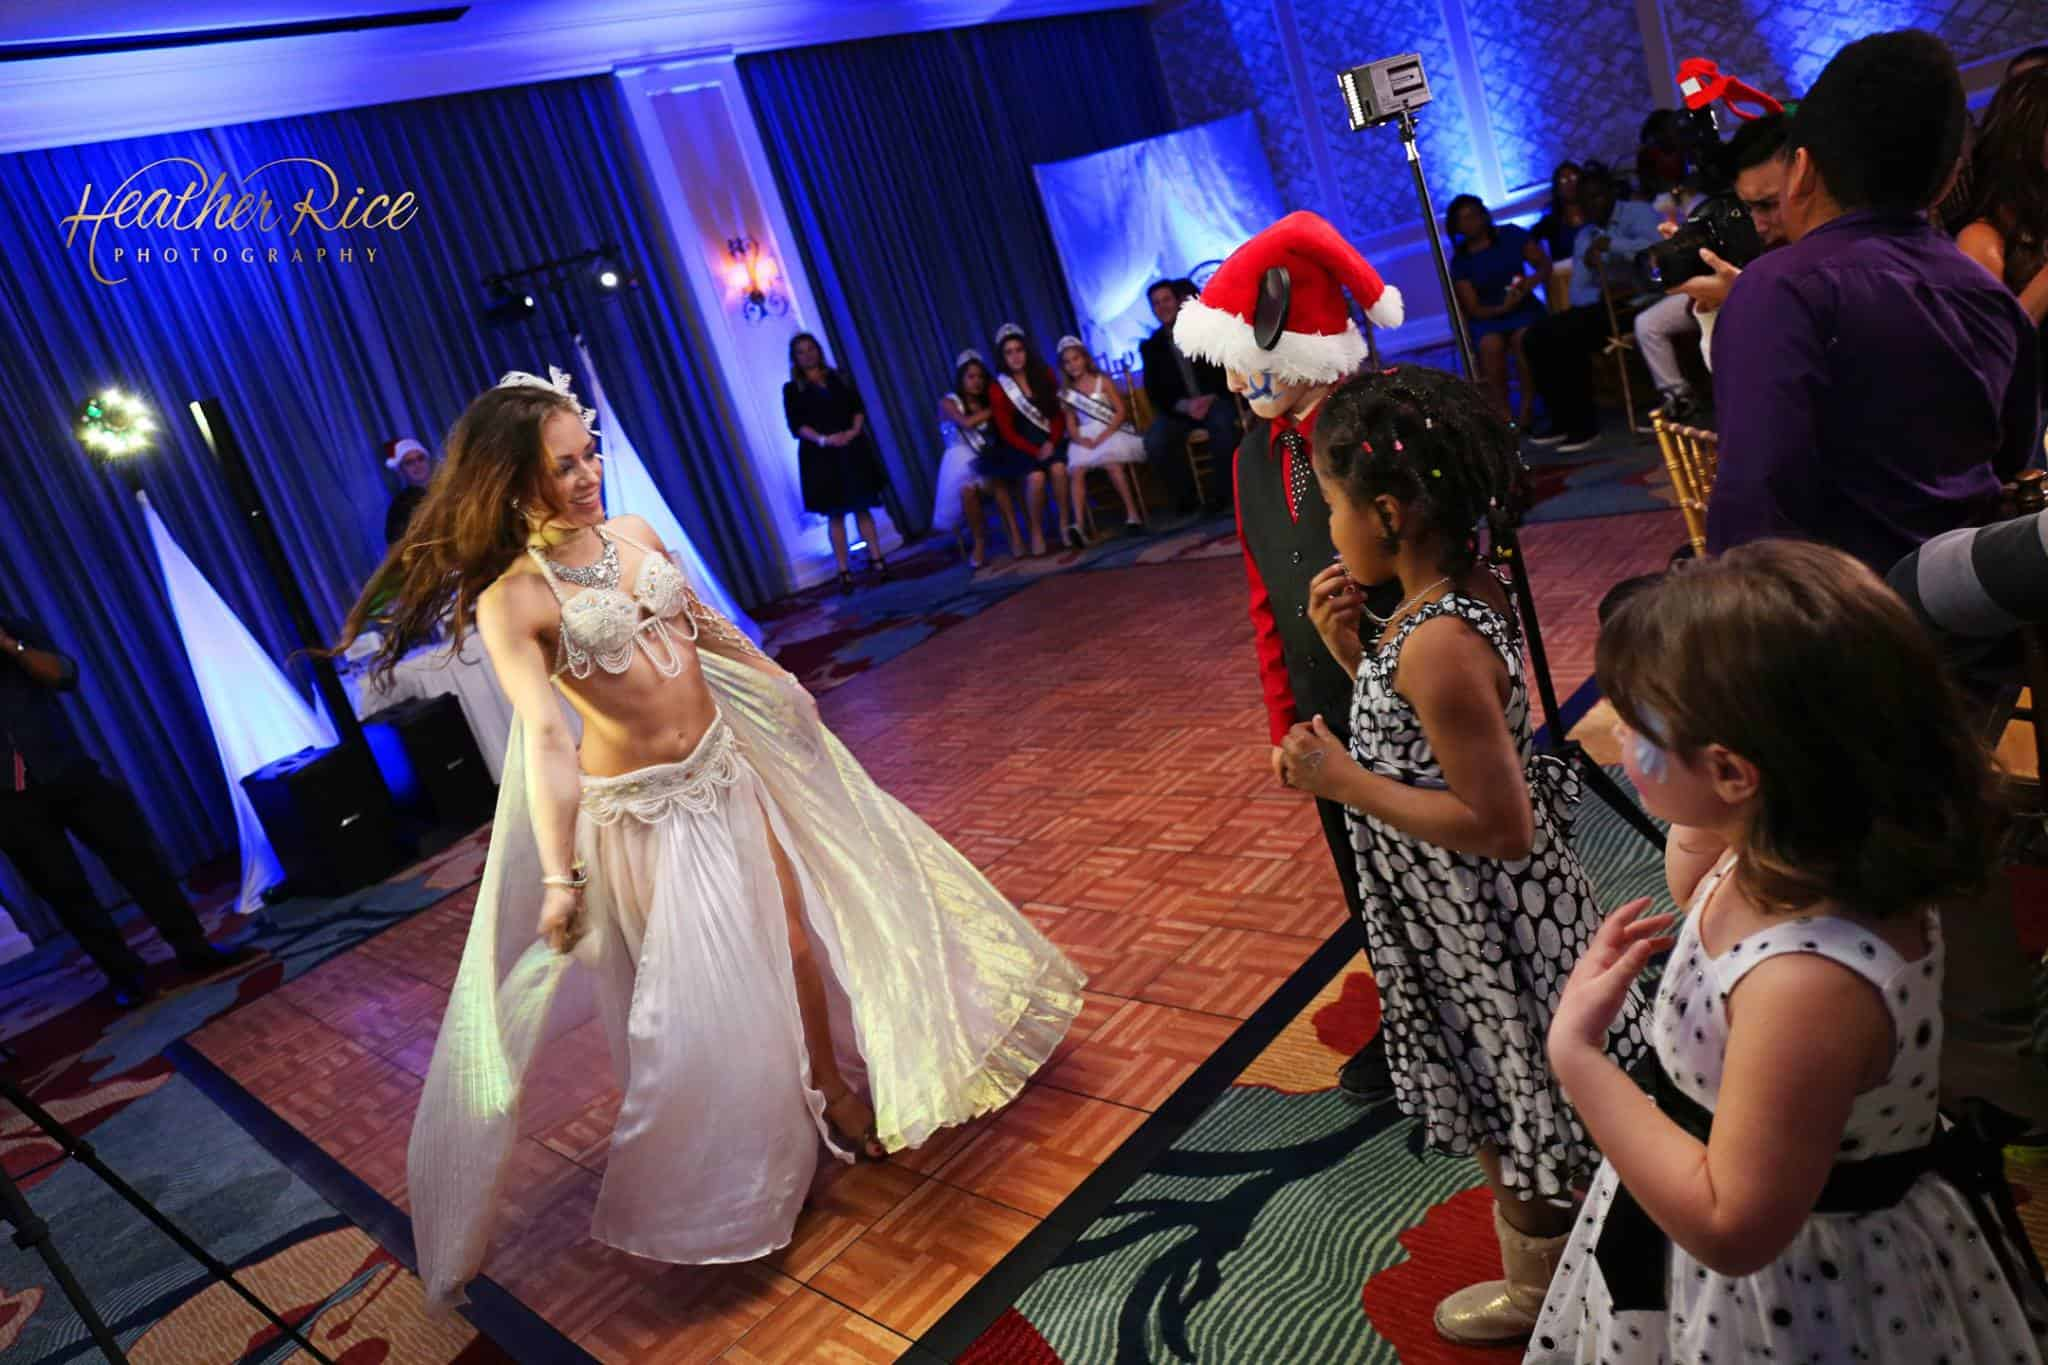 Orlando belly dancer Carrara Nour performs a Christmas-themed show at a party for Heart Gallery Winter Wonderland Gala at Omni Championsgate Resort. Photo by Heather Rice